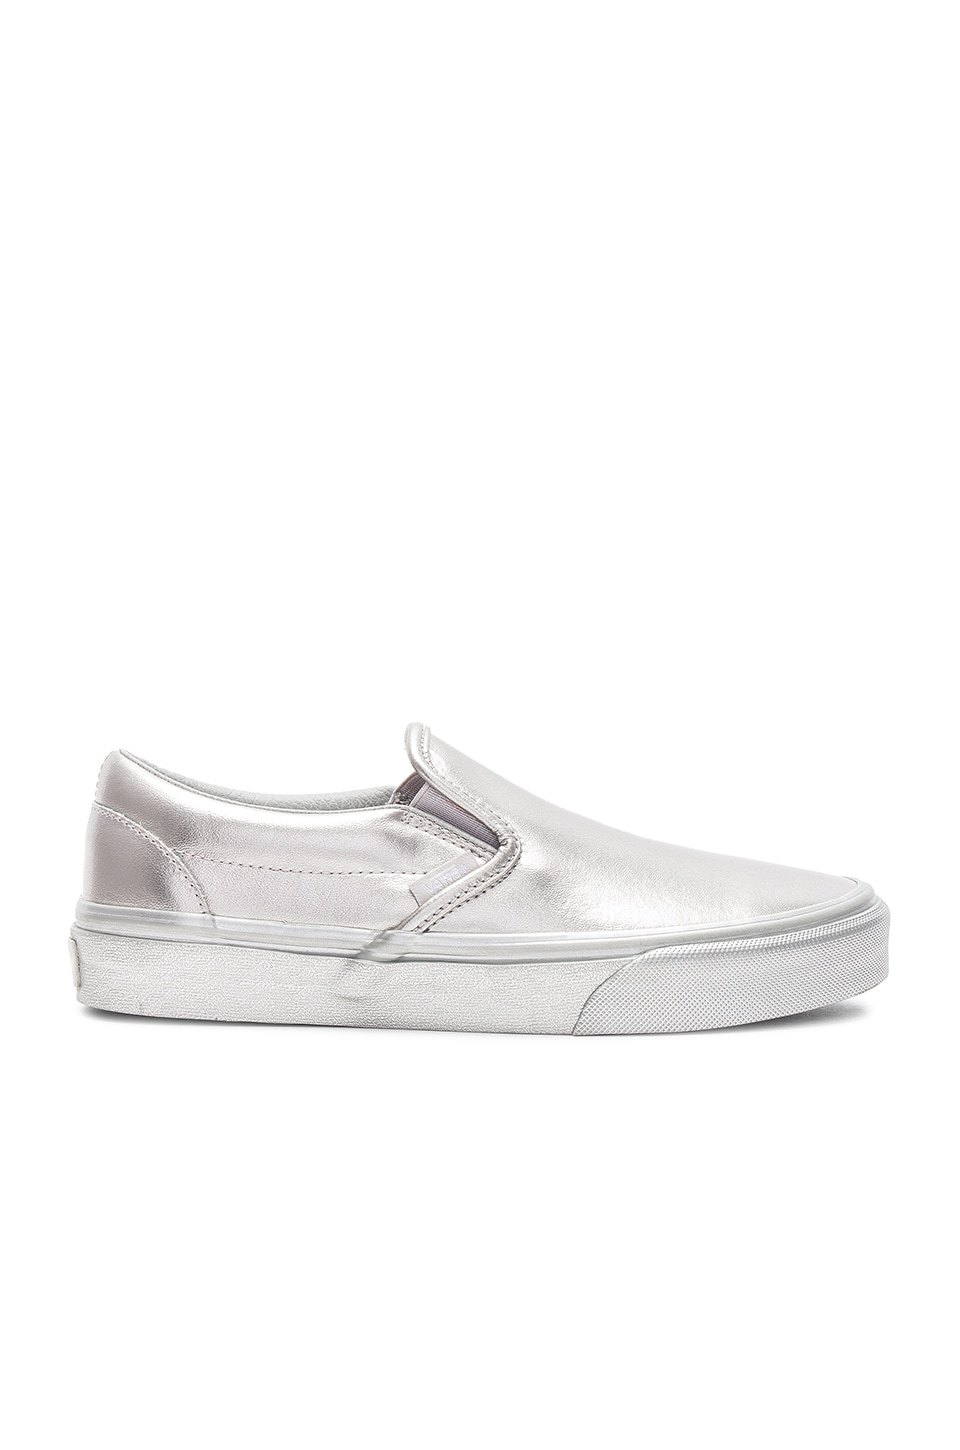 Vans Metallic Sidewall Classic Slip-On Sneaker in Silver